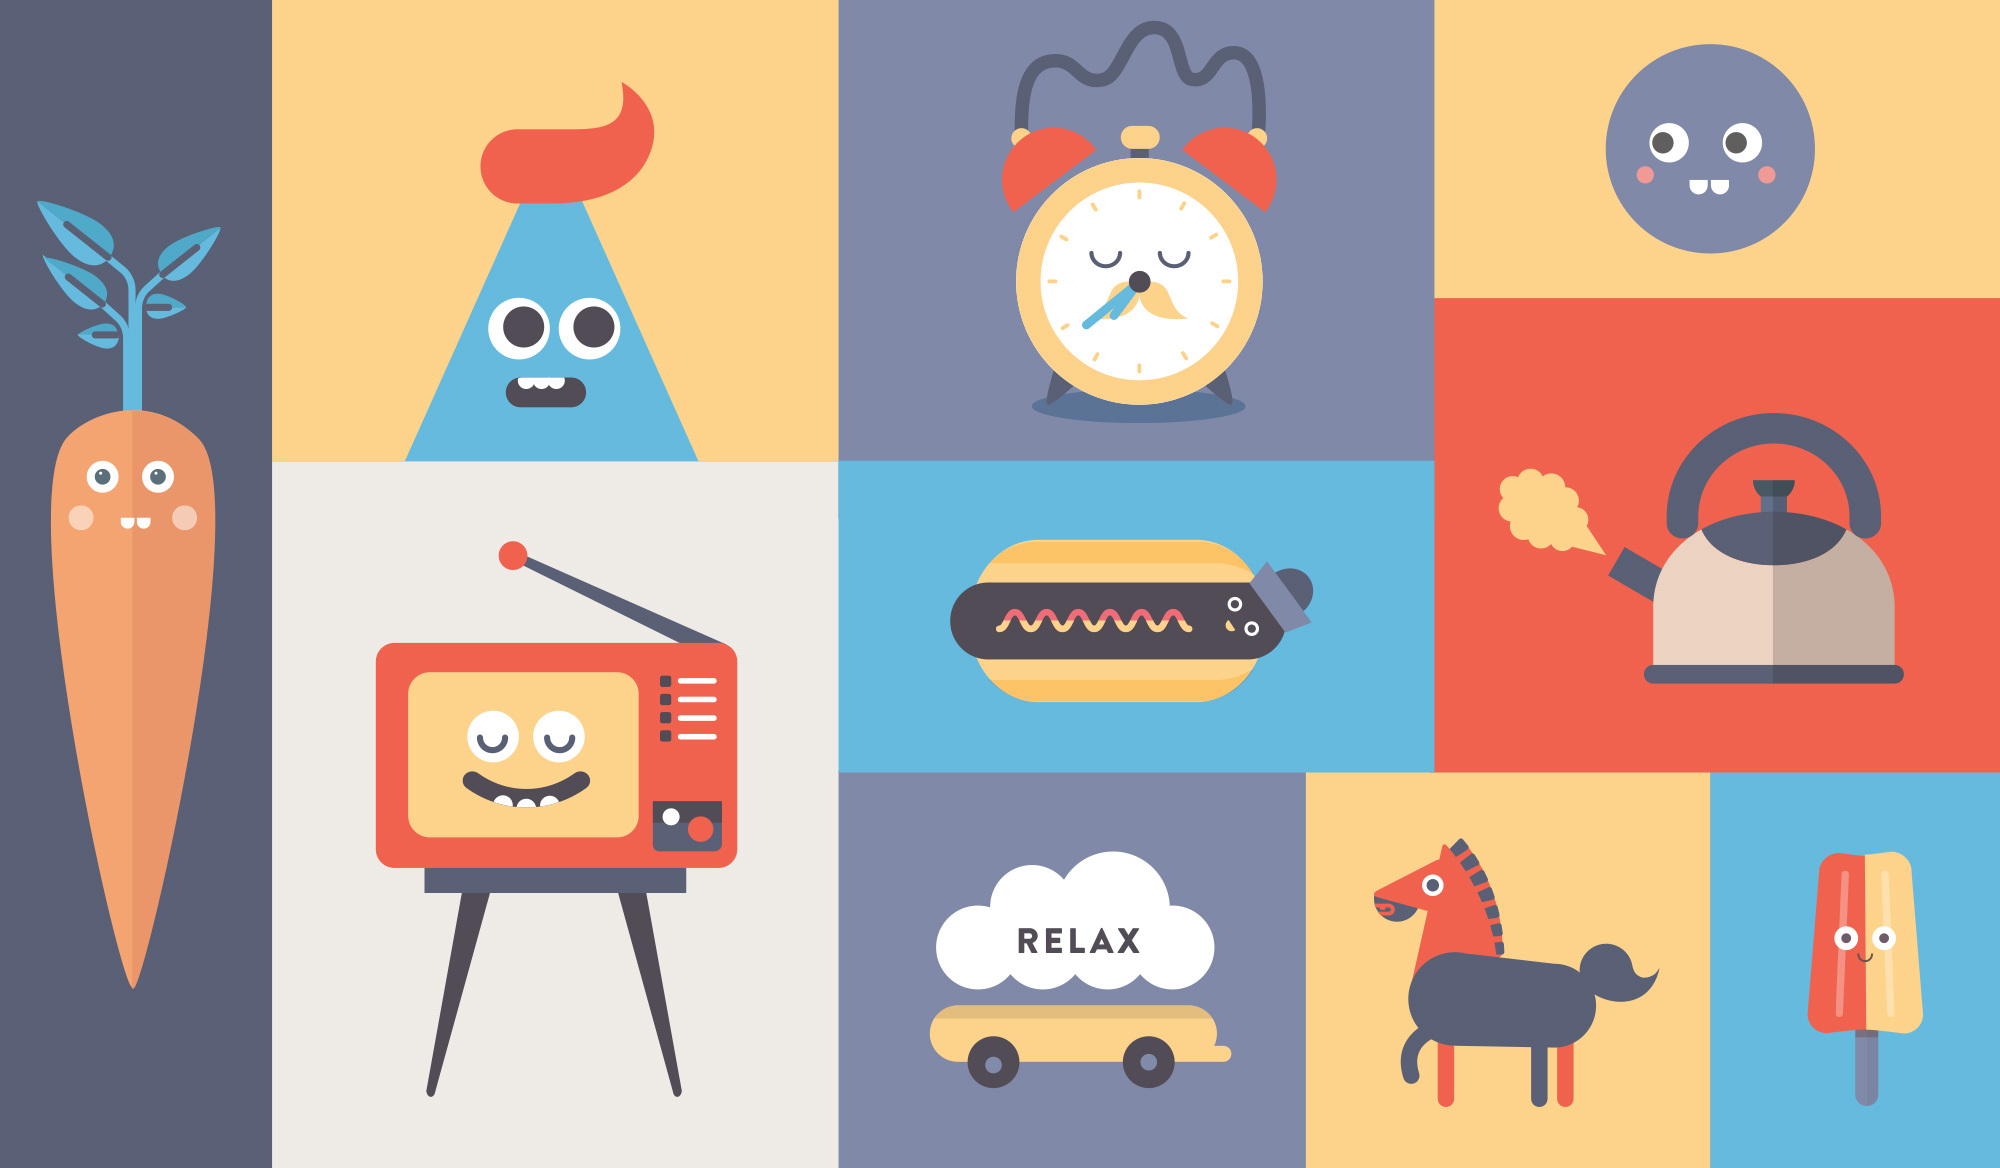 Headspace illustrations